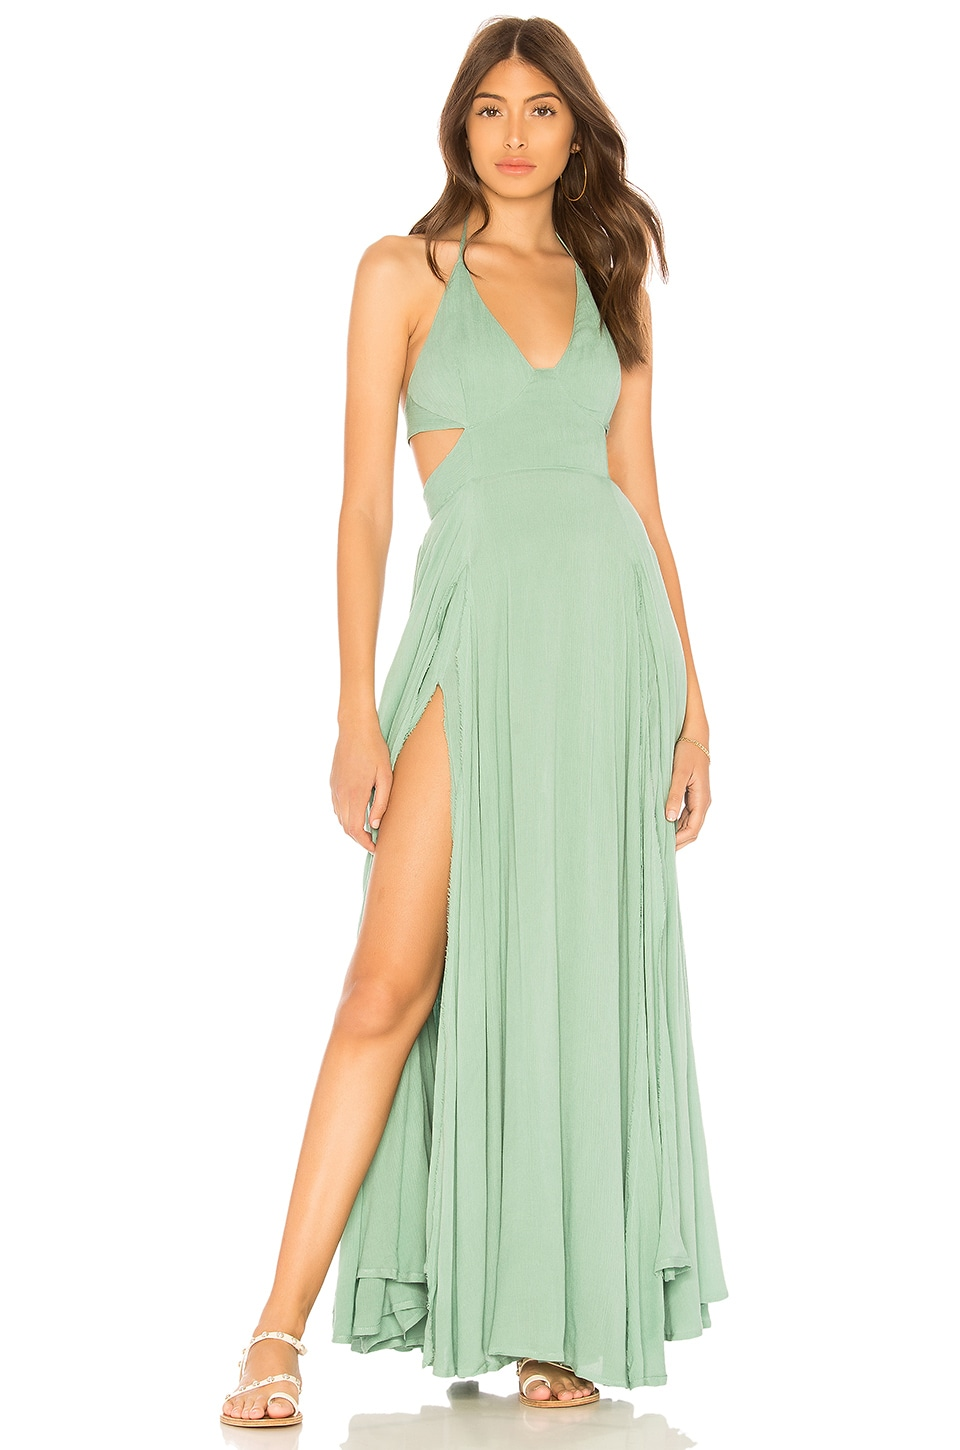 7d3a1e2bd2da Free People X REVOLVE Lillie Maxi Dress in Turquoise | REVOLVE